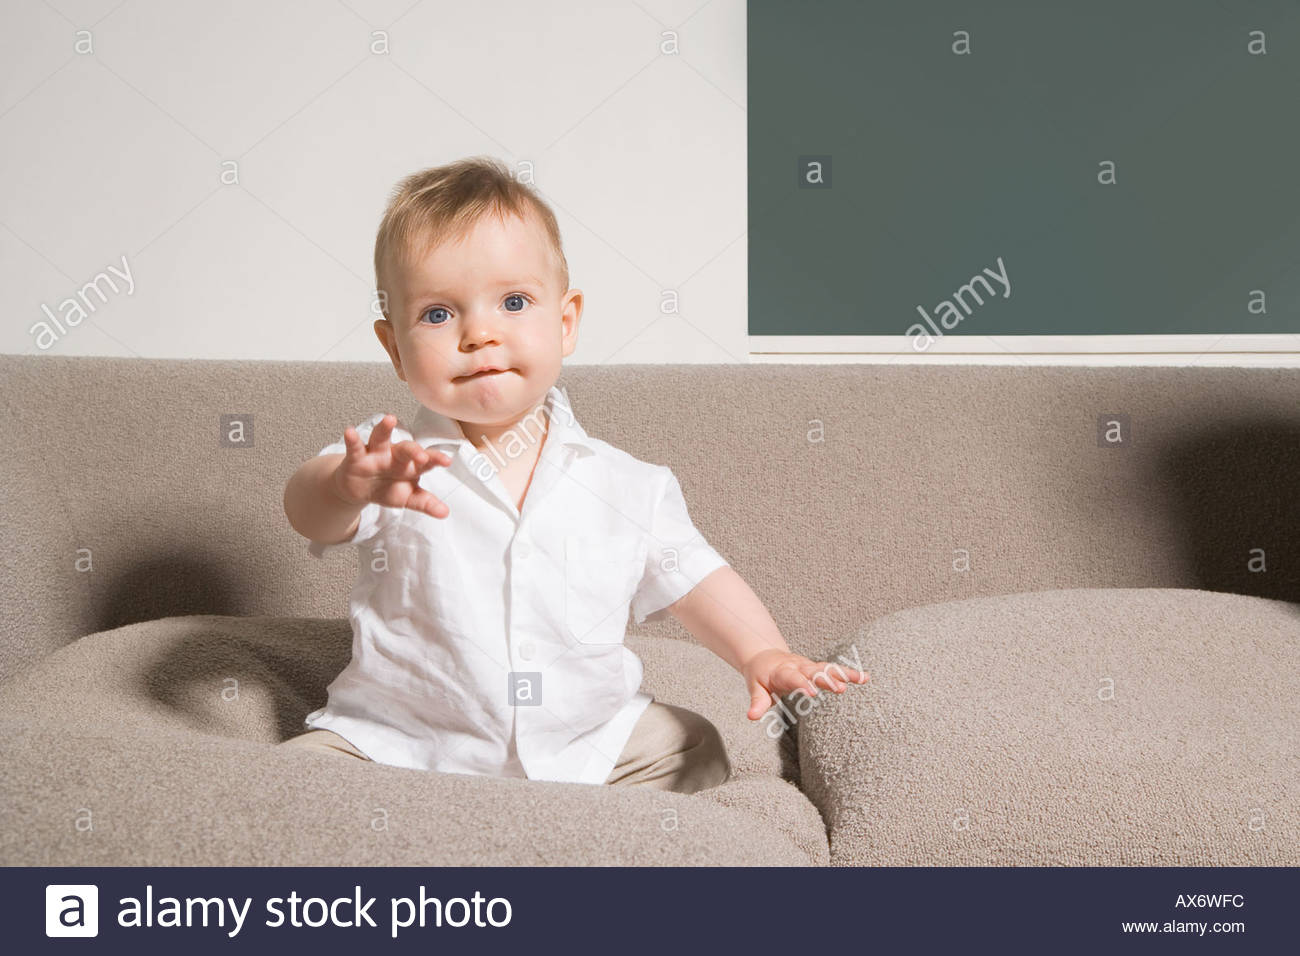 Baby on sofa - Stock Image